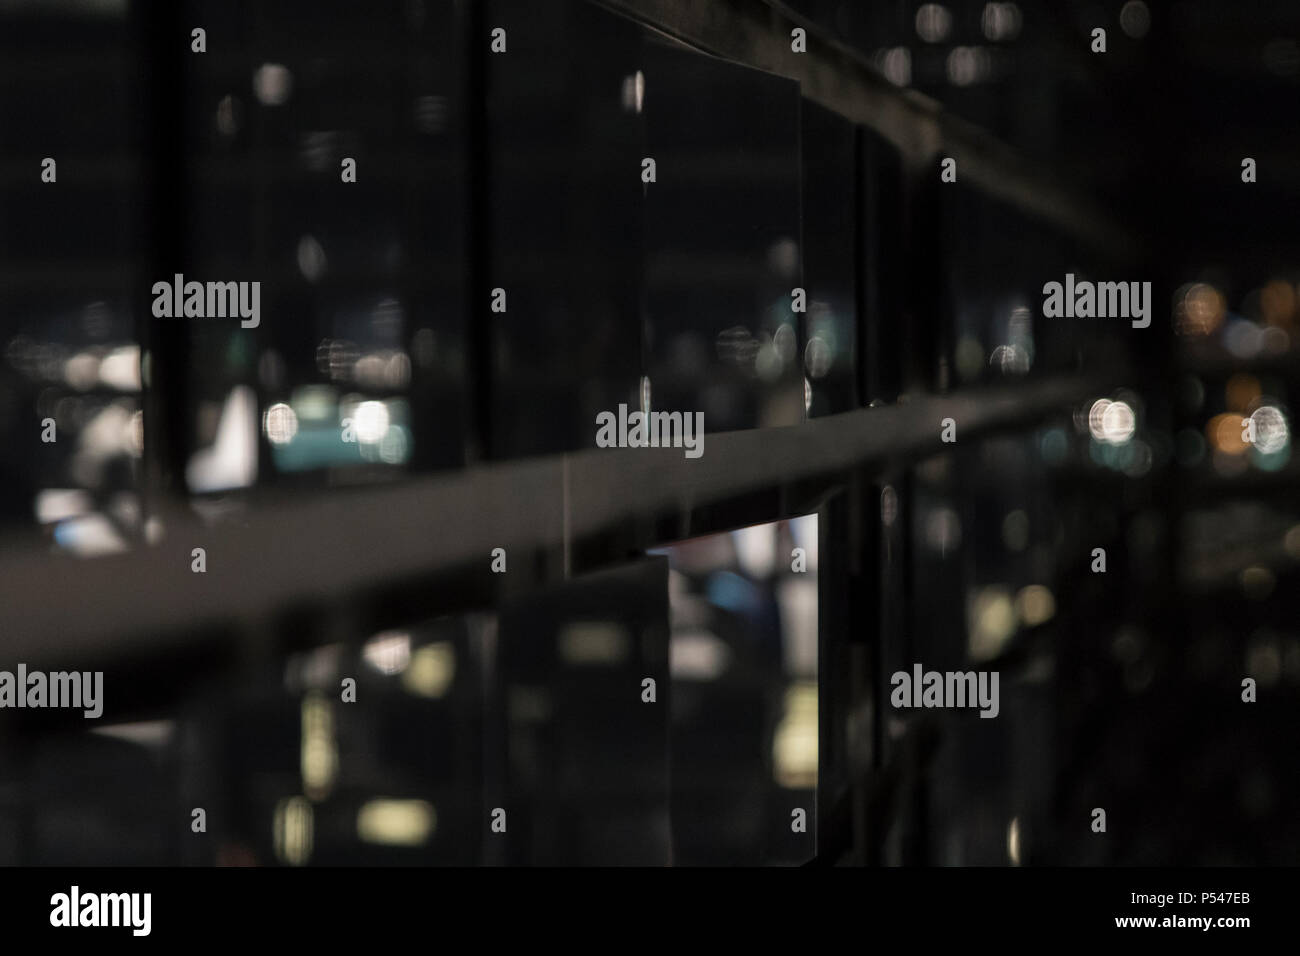 abstract blurs and reflections with mirrors - Stock Image